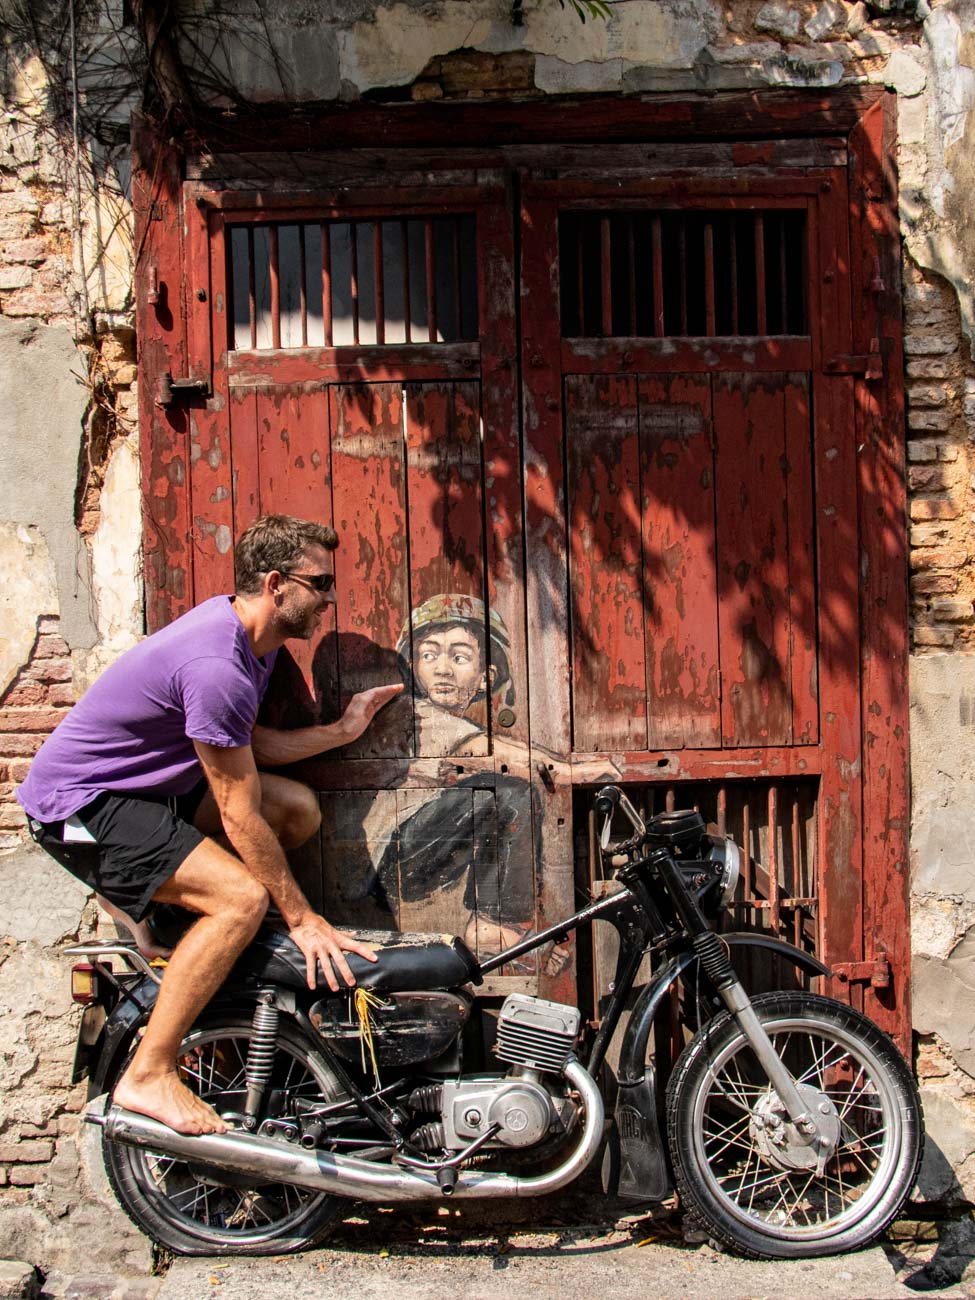 'Boy on Motorcycle' - Things to see and do in Penang